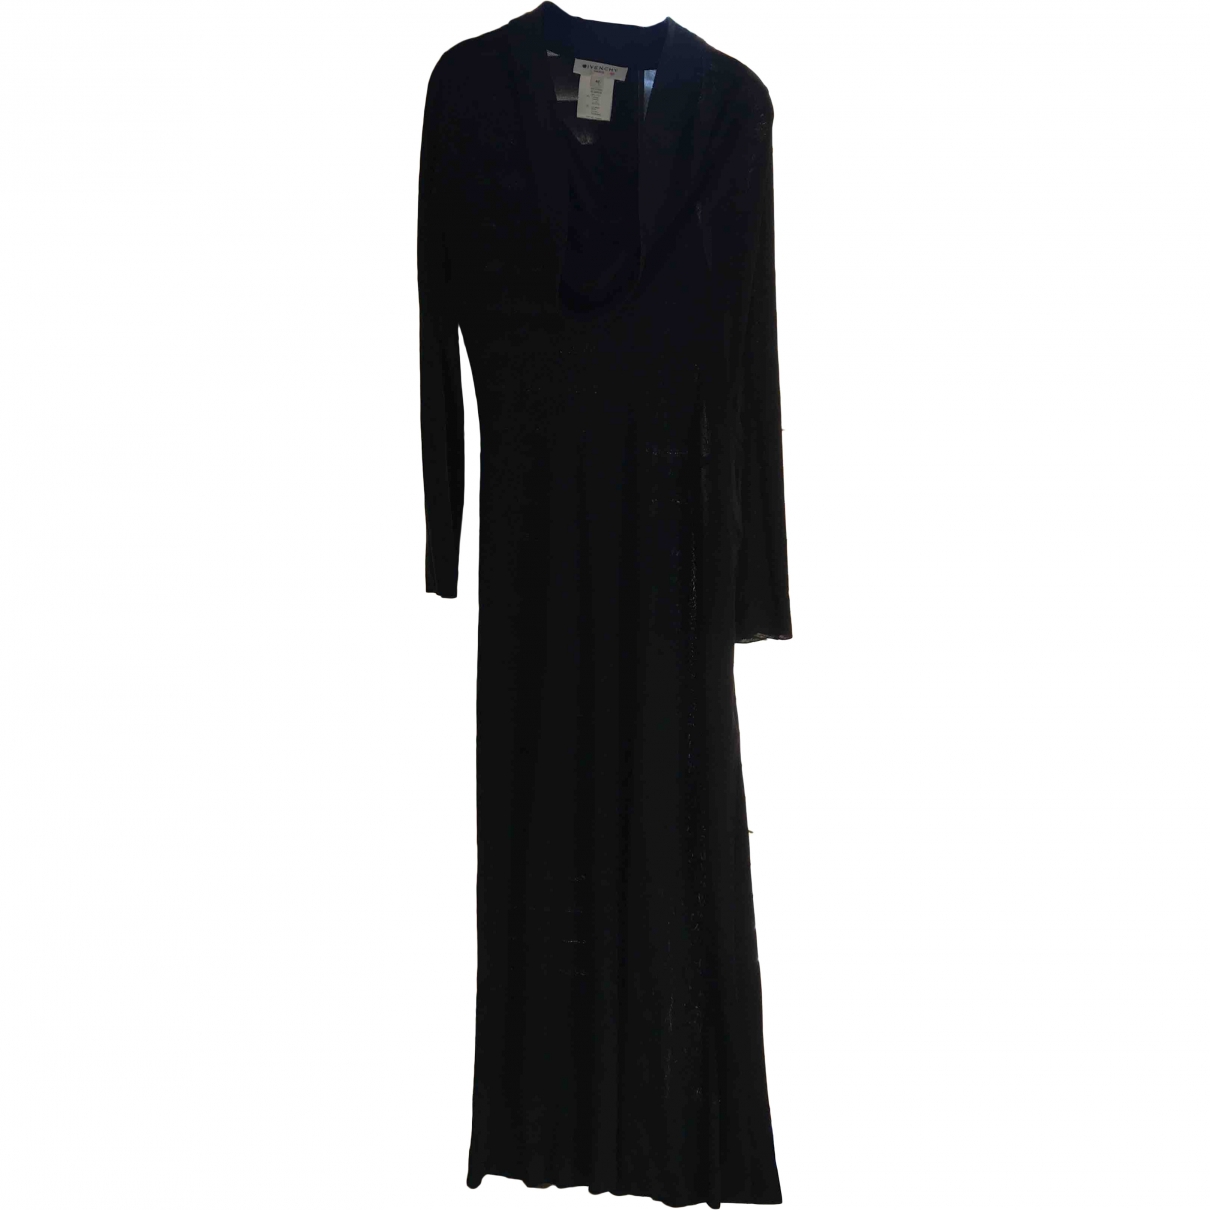 Givenchy \N Black dress for Women 40 FR